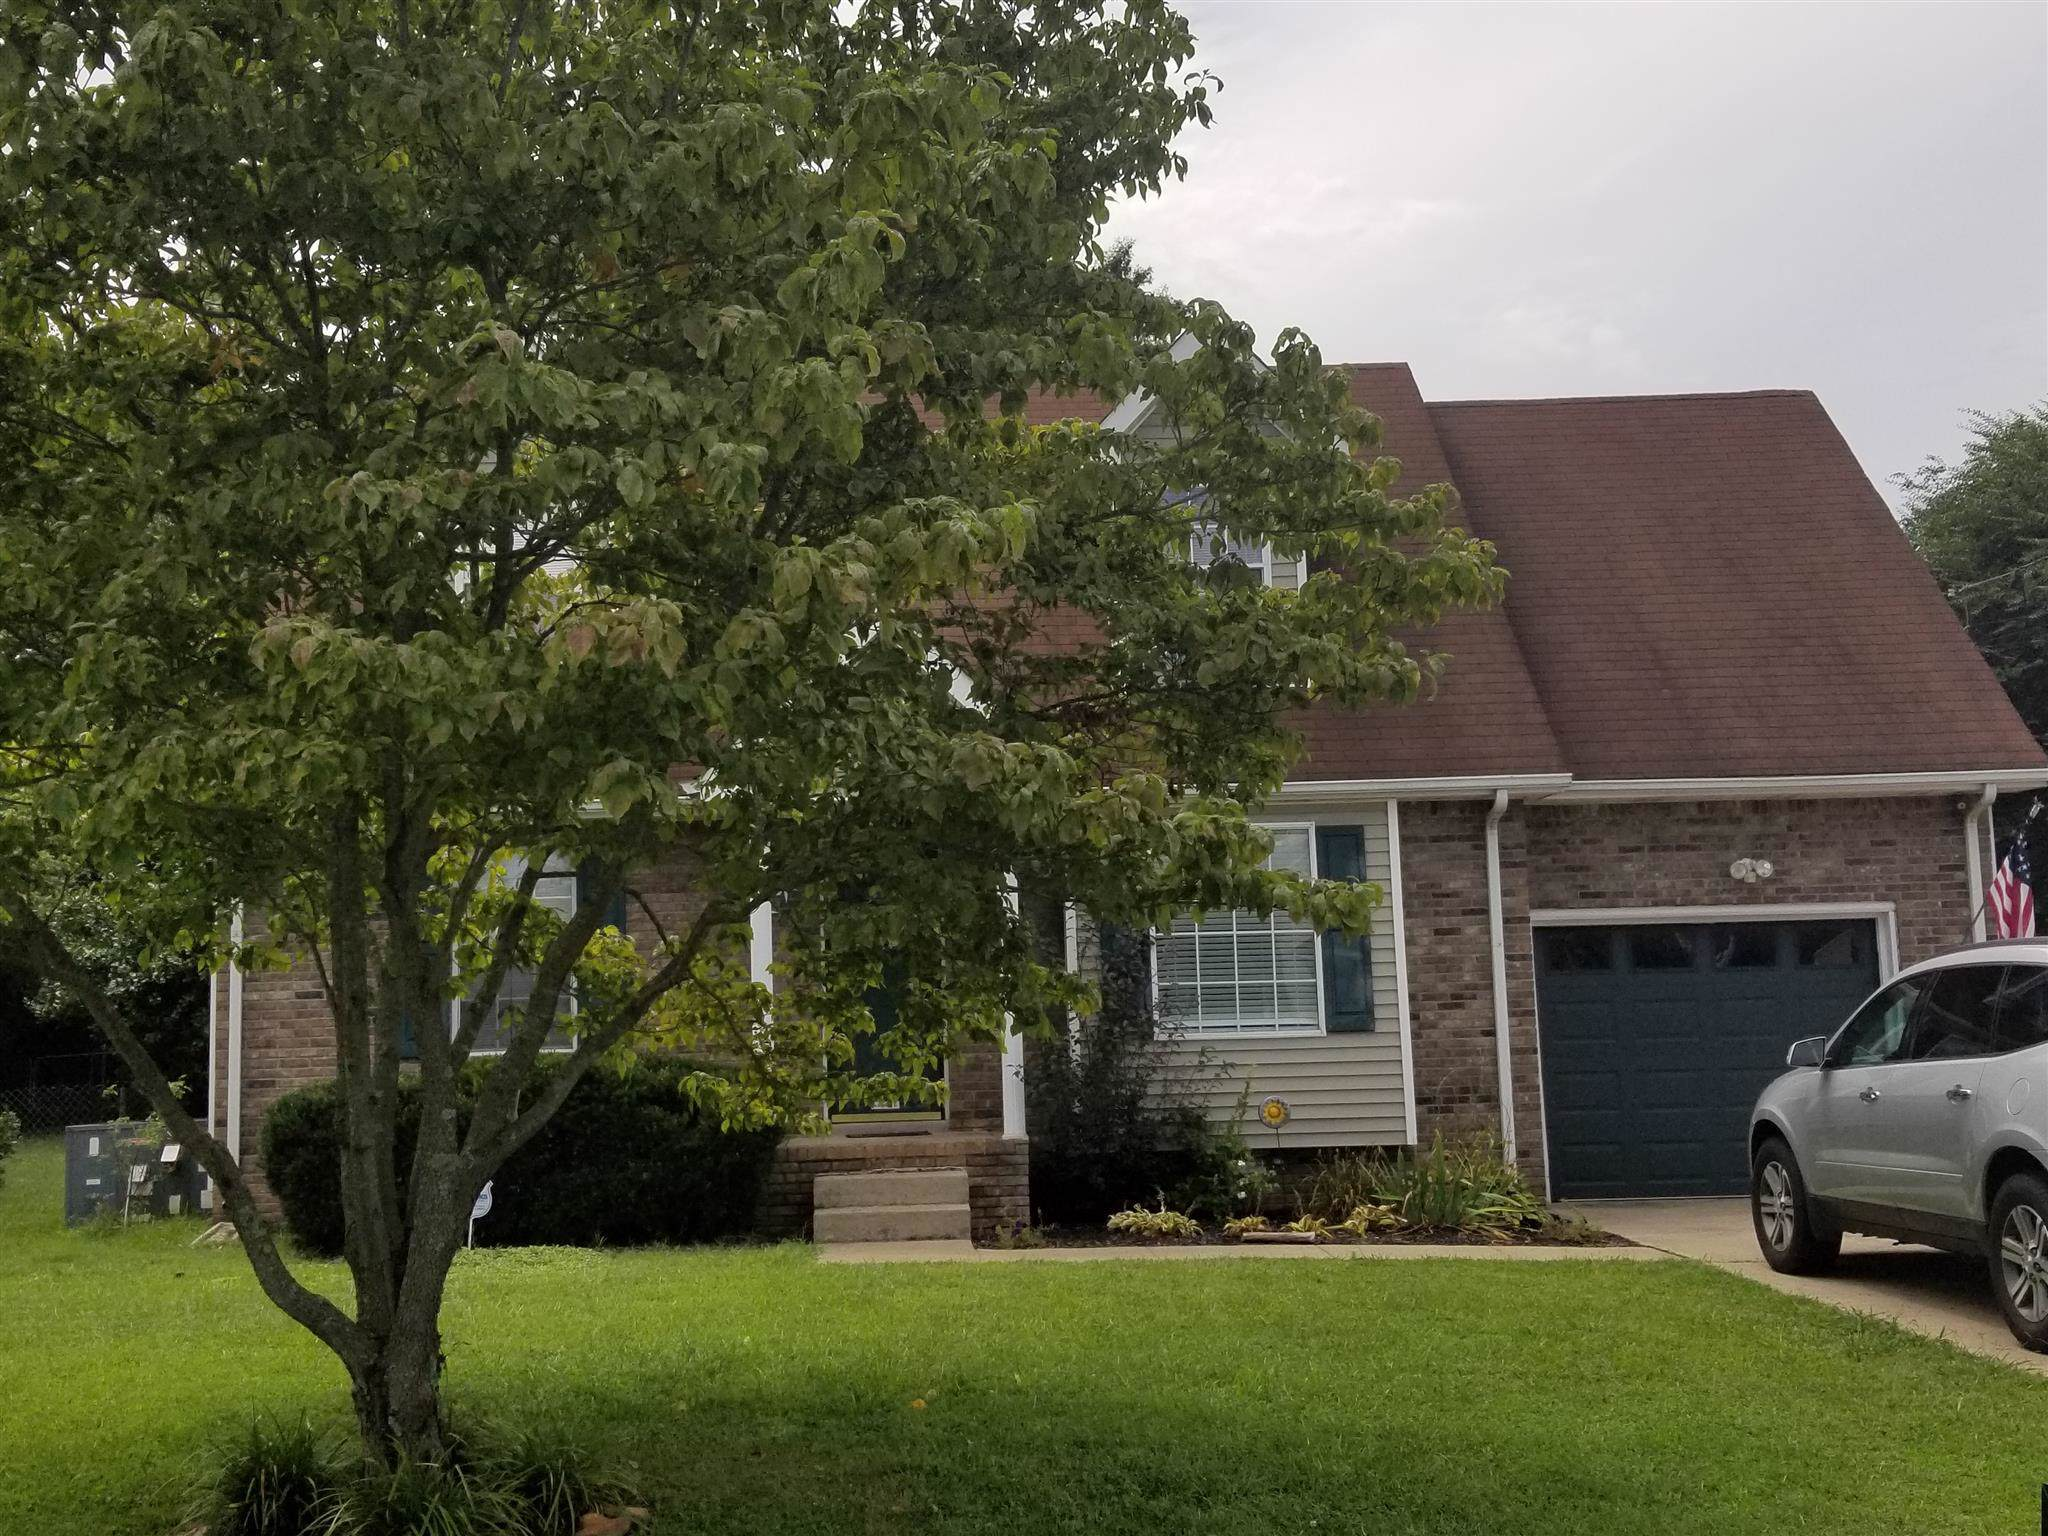 204 Windroe Ct, Clarksville, TN 37042 (MLS #RTC2072458) :: CityLiving Group